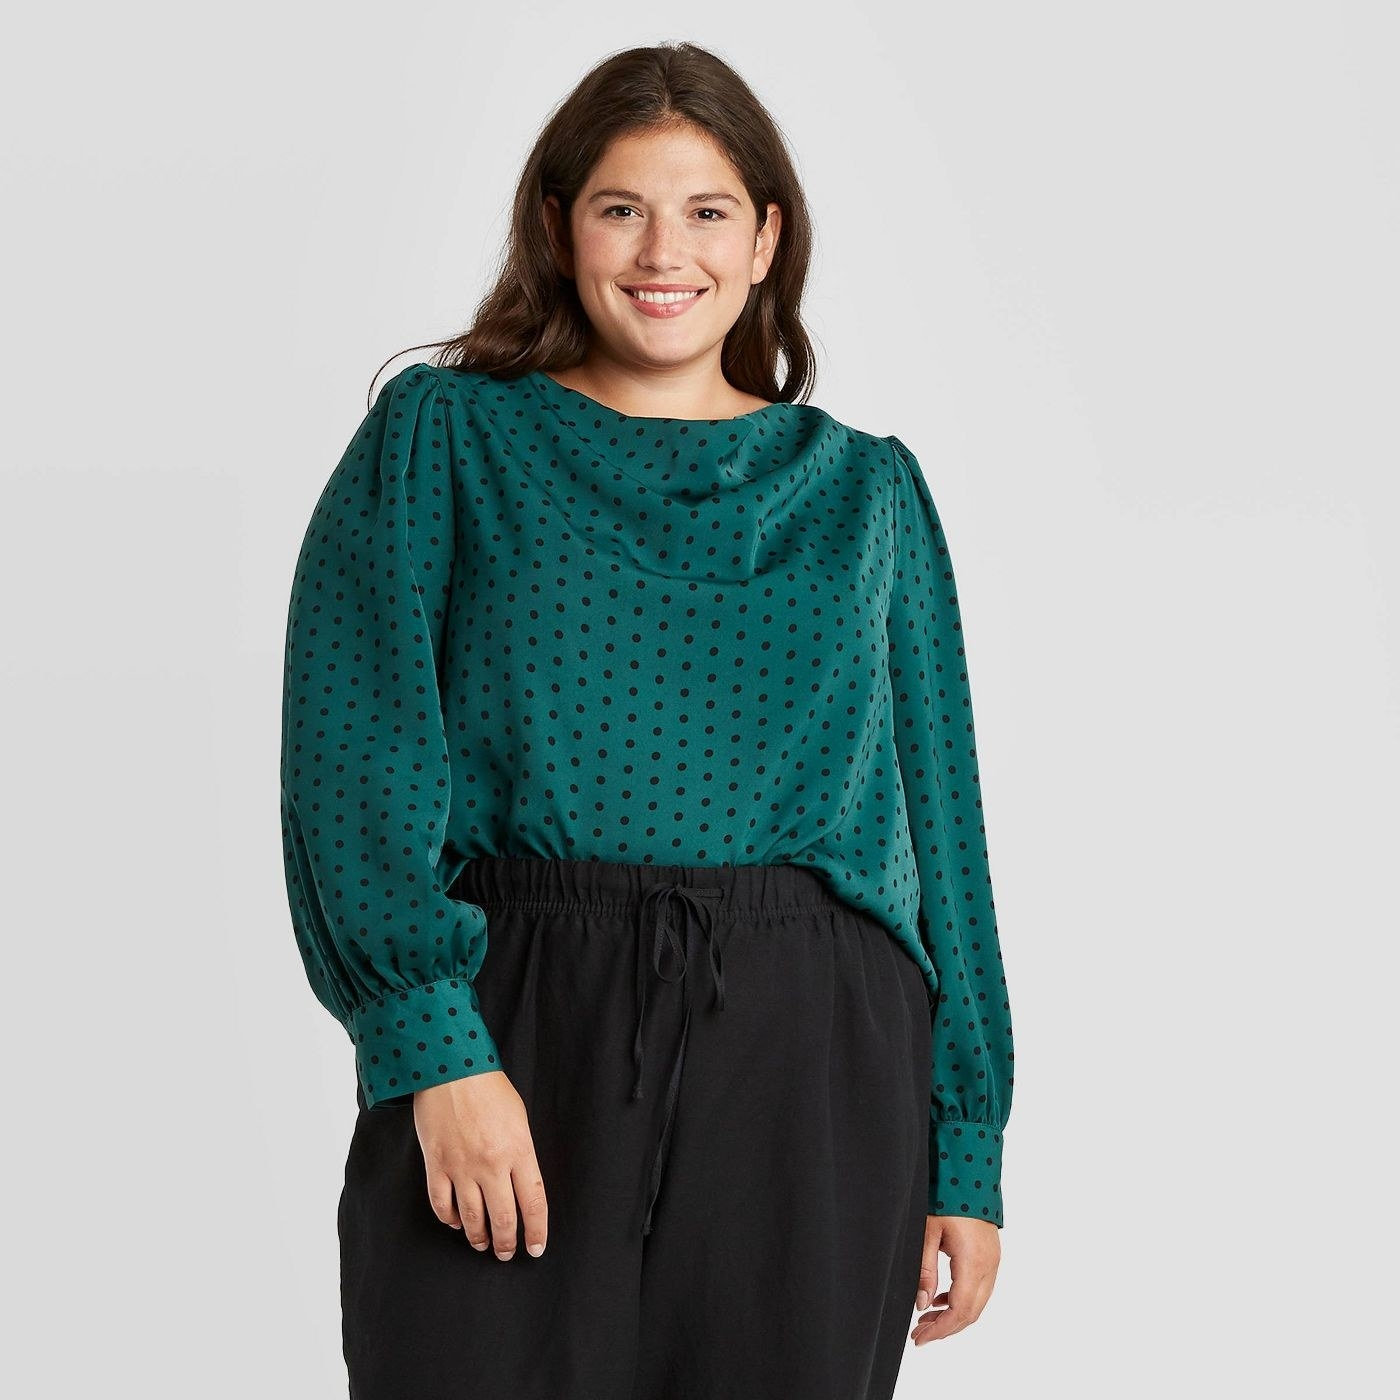 Model wearing the silk green top with small black polka dots